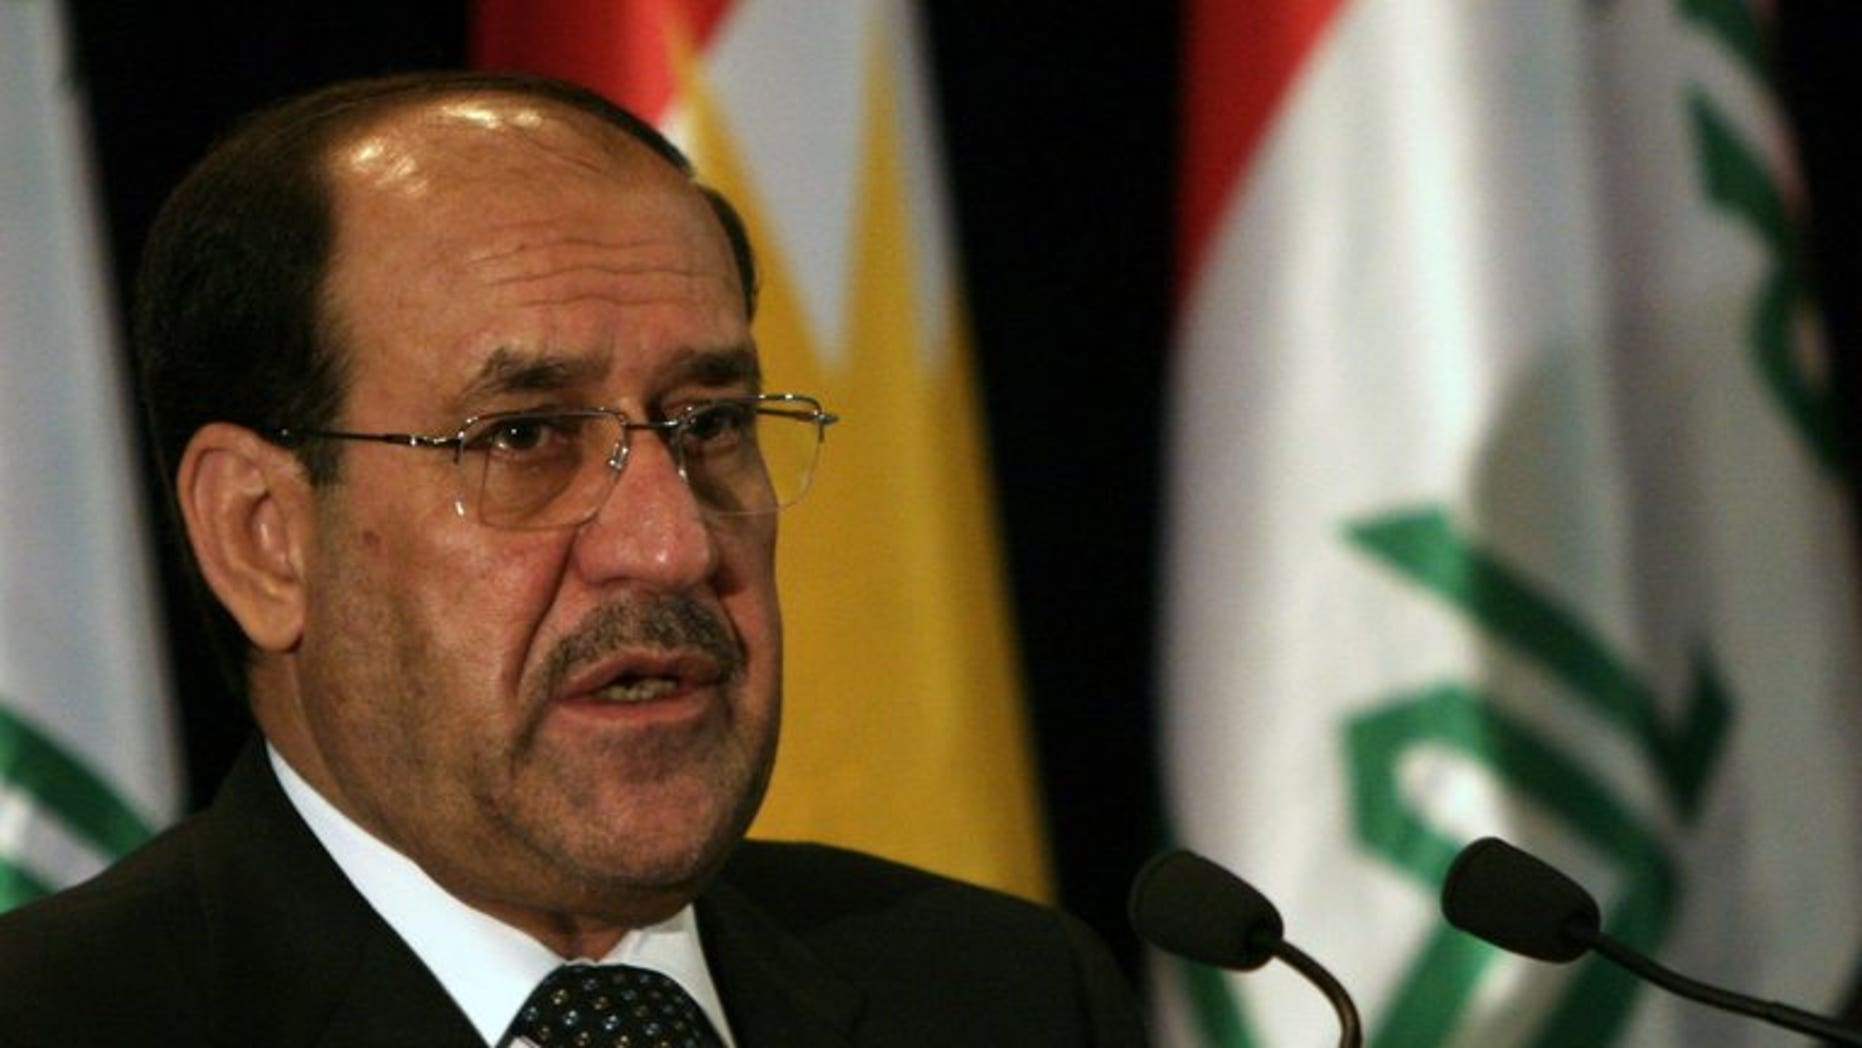 Iraqi Prime Minister Nuri al-Maliki speaks during a joint press conference with Kurdish regional president Massoud Barzani in the northern Iraqi Kurdish city of Arbil on June 9, 2013. Maliki is to visit India, officials said Wednesday, to push for investment in much-needed reconstruction as New Delhi looks to secure critical energy supplies.